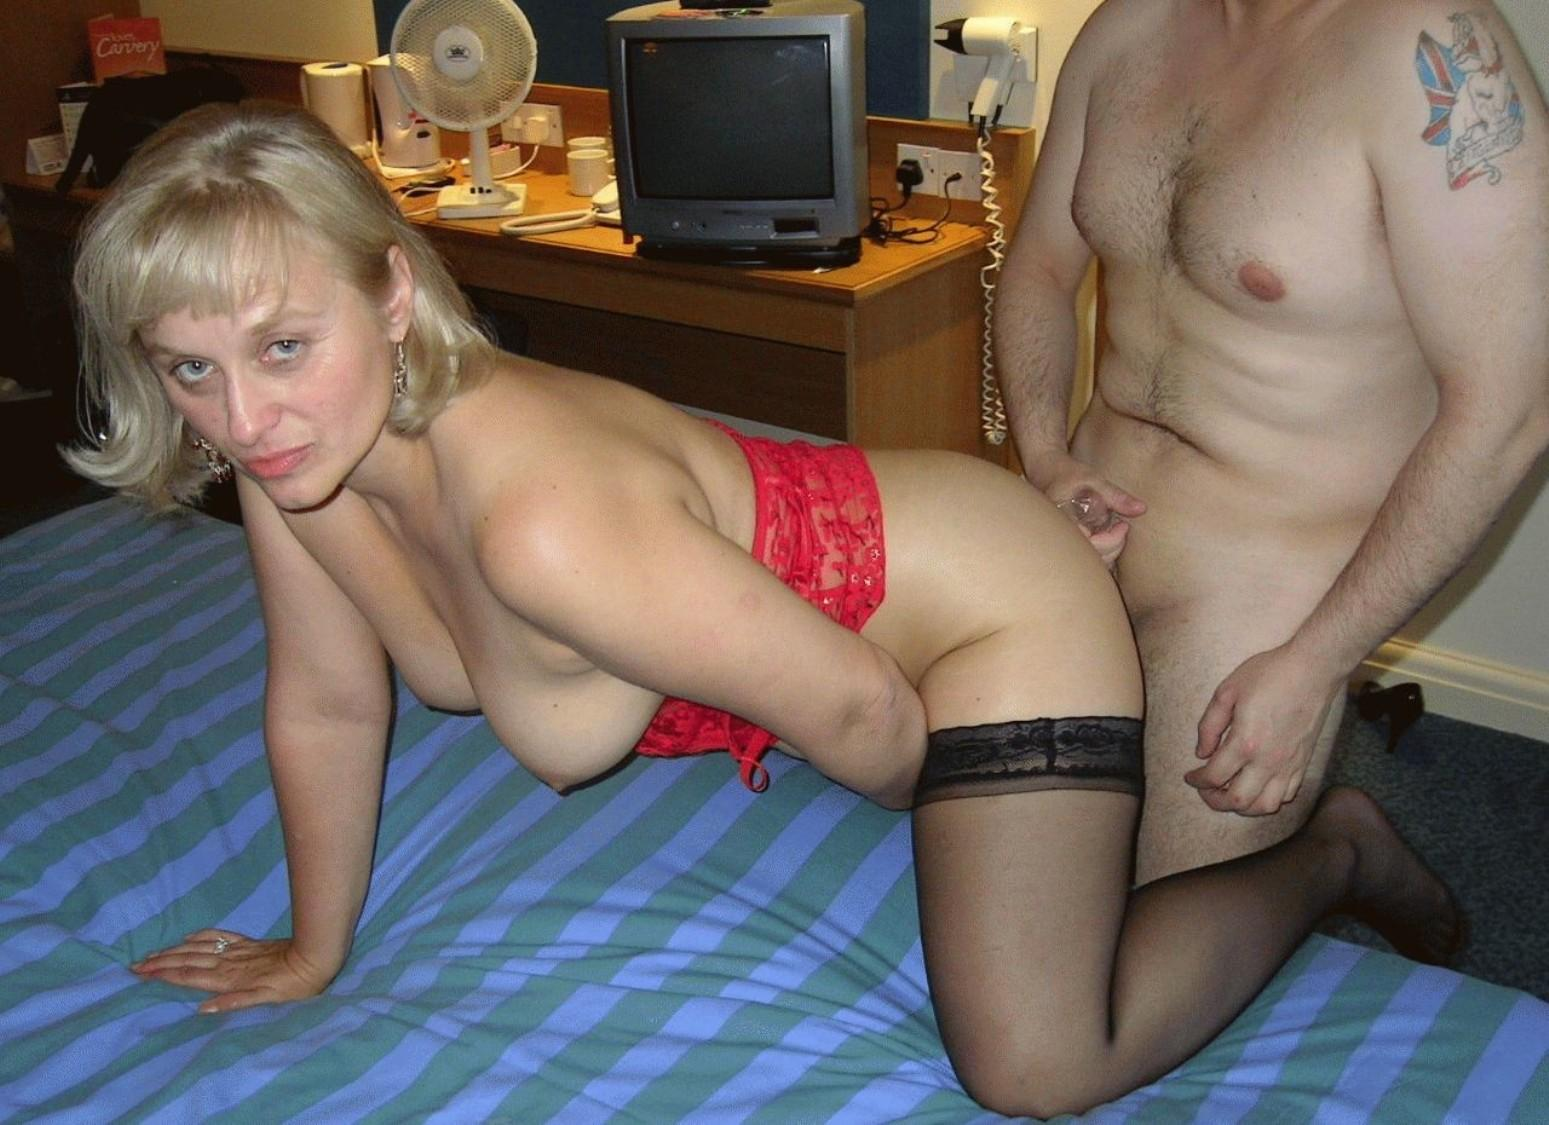 Amateur MILF getting pounded in doggy style is always a fun experience. Horny mature gets her shaved hungry pussy drilled hardcore